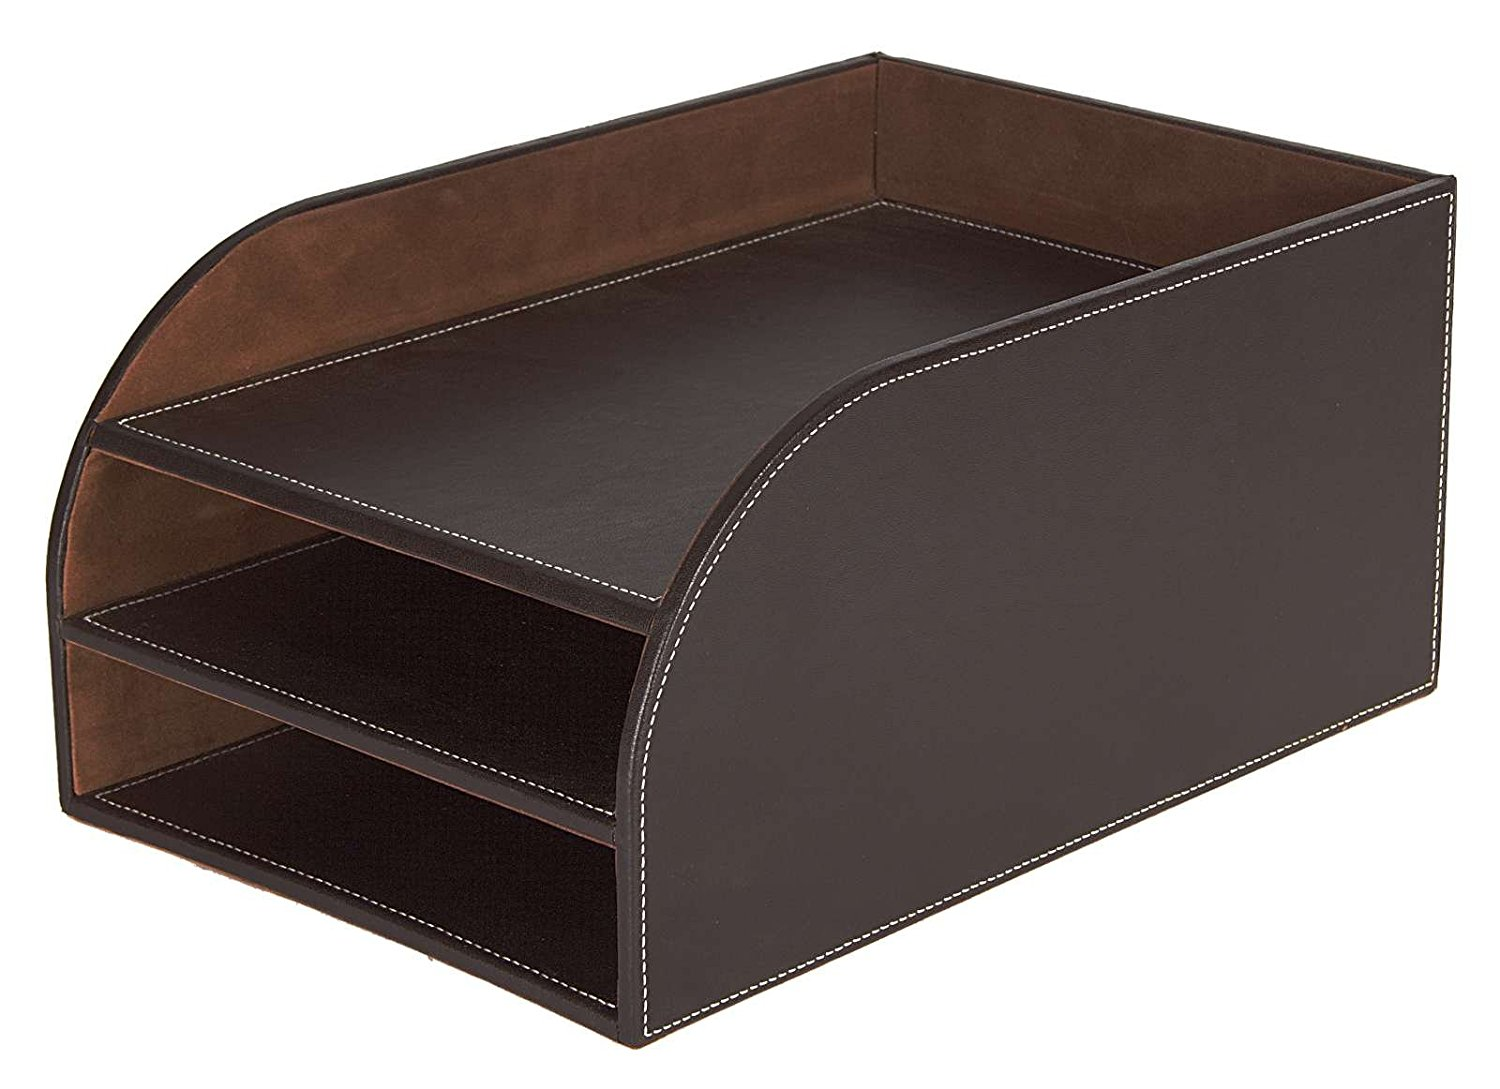 Osco Faux Leather 3 Tier Letter Tray Brown